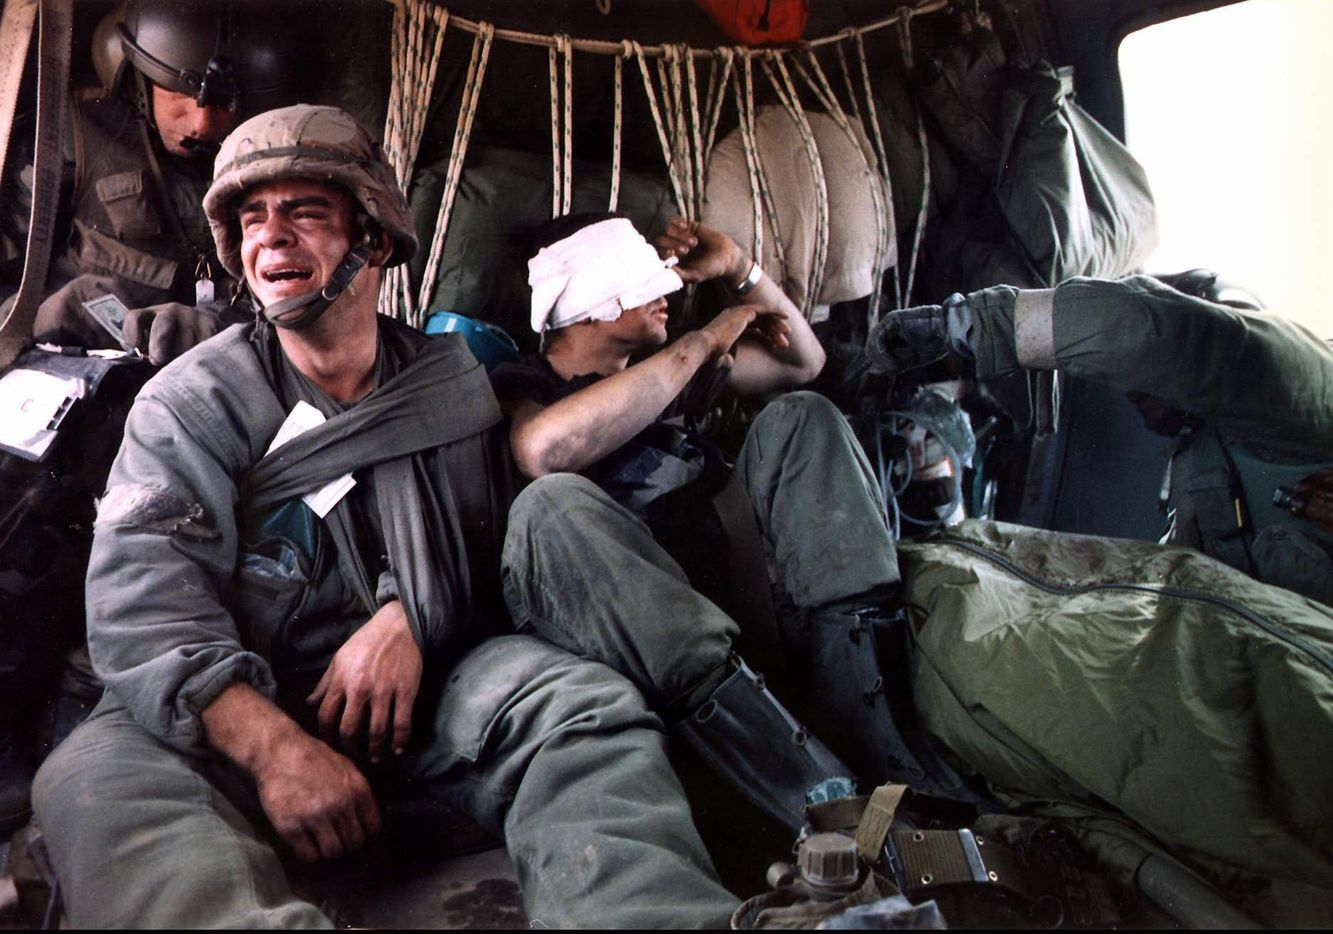 In one of the most indelible scenes from the 1991 Gulf War, an American soldier cries after learning that a fellow tank crewman was killed in a mortar explosion during Operation Desert Storm in Kuwait. Another Five years after the invasion of Kuwait by Iraq, U.S. forces are still protecting the Persian Gulf as an area of 'vital interest.'